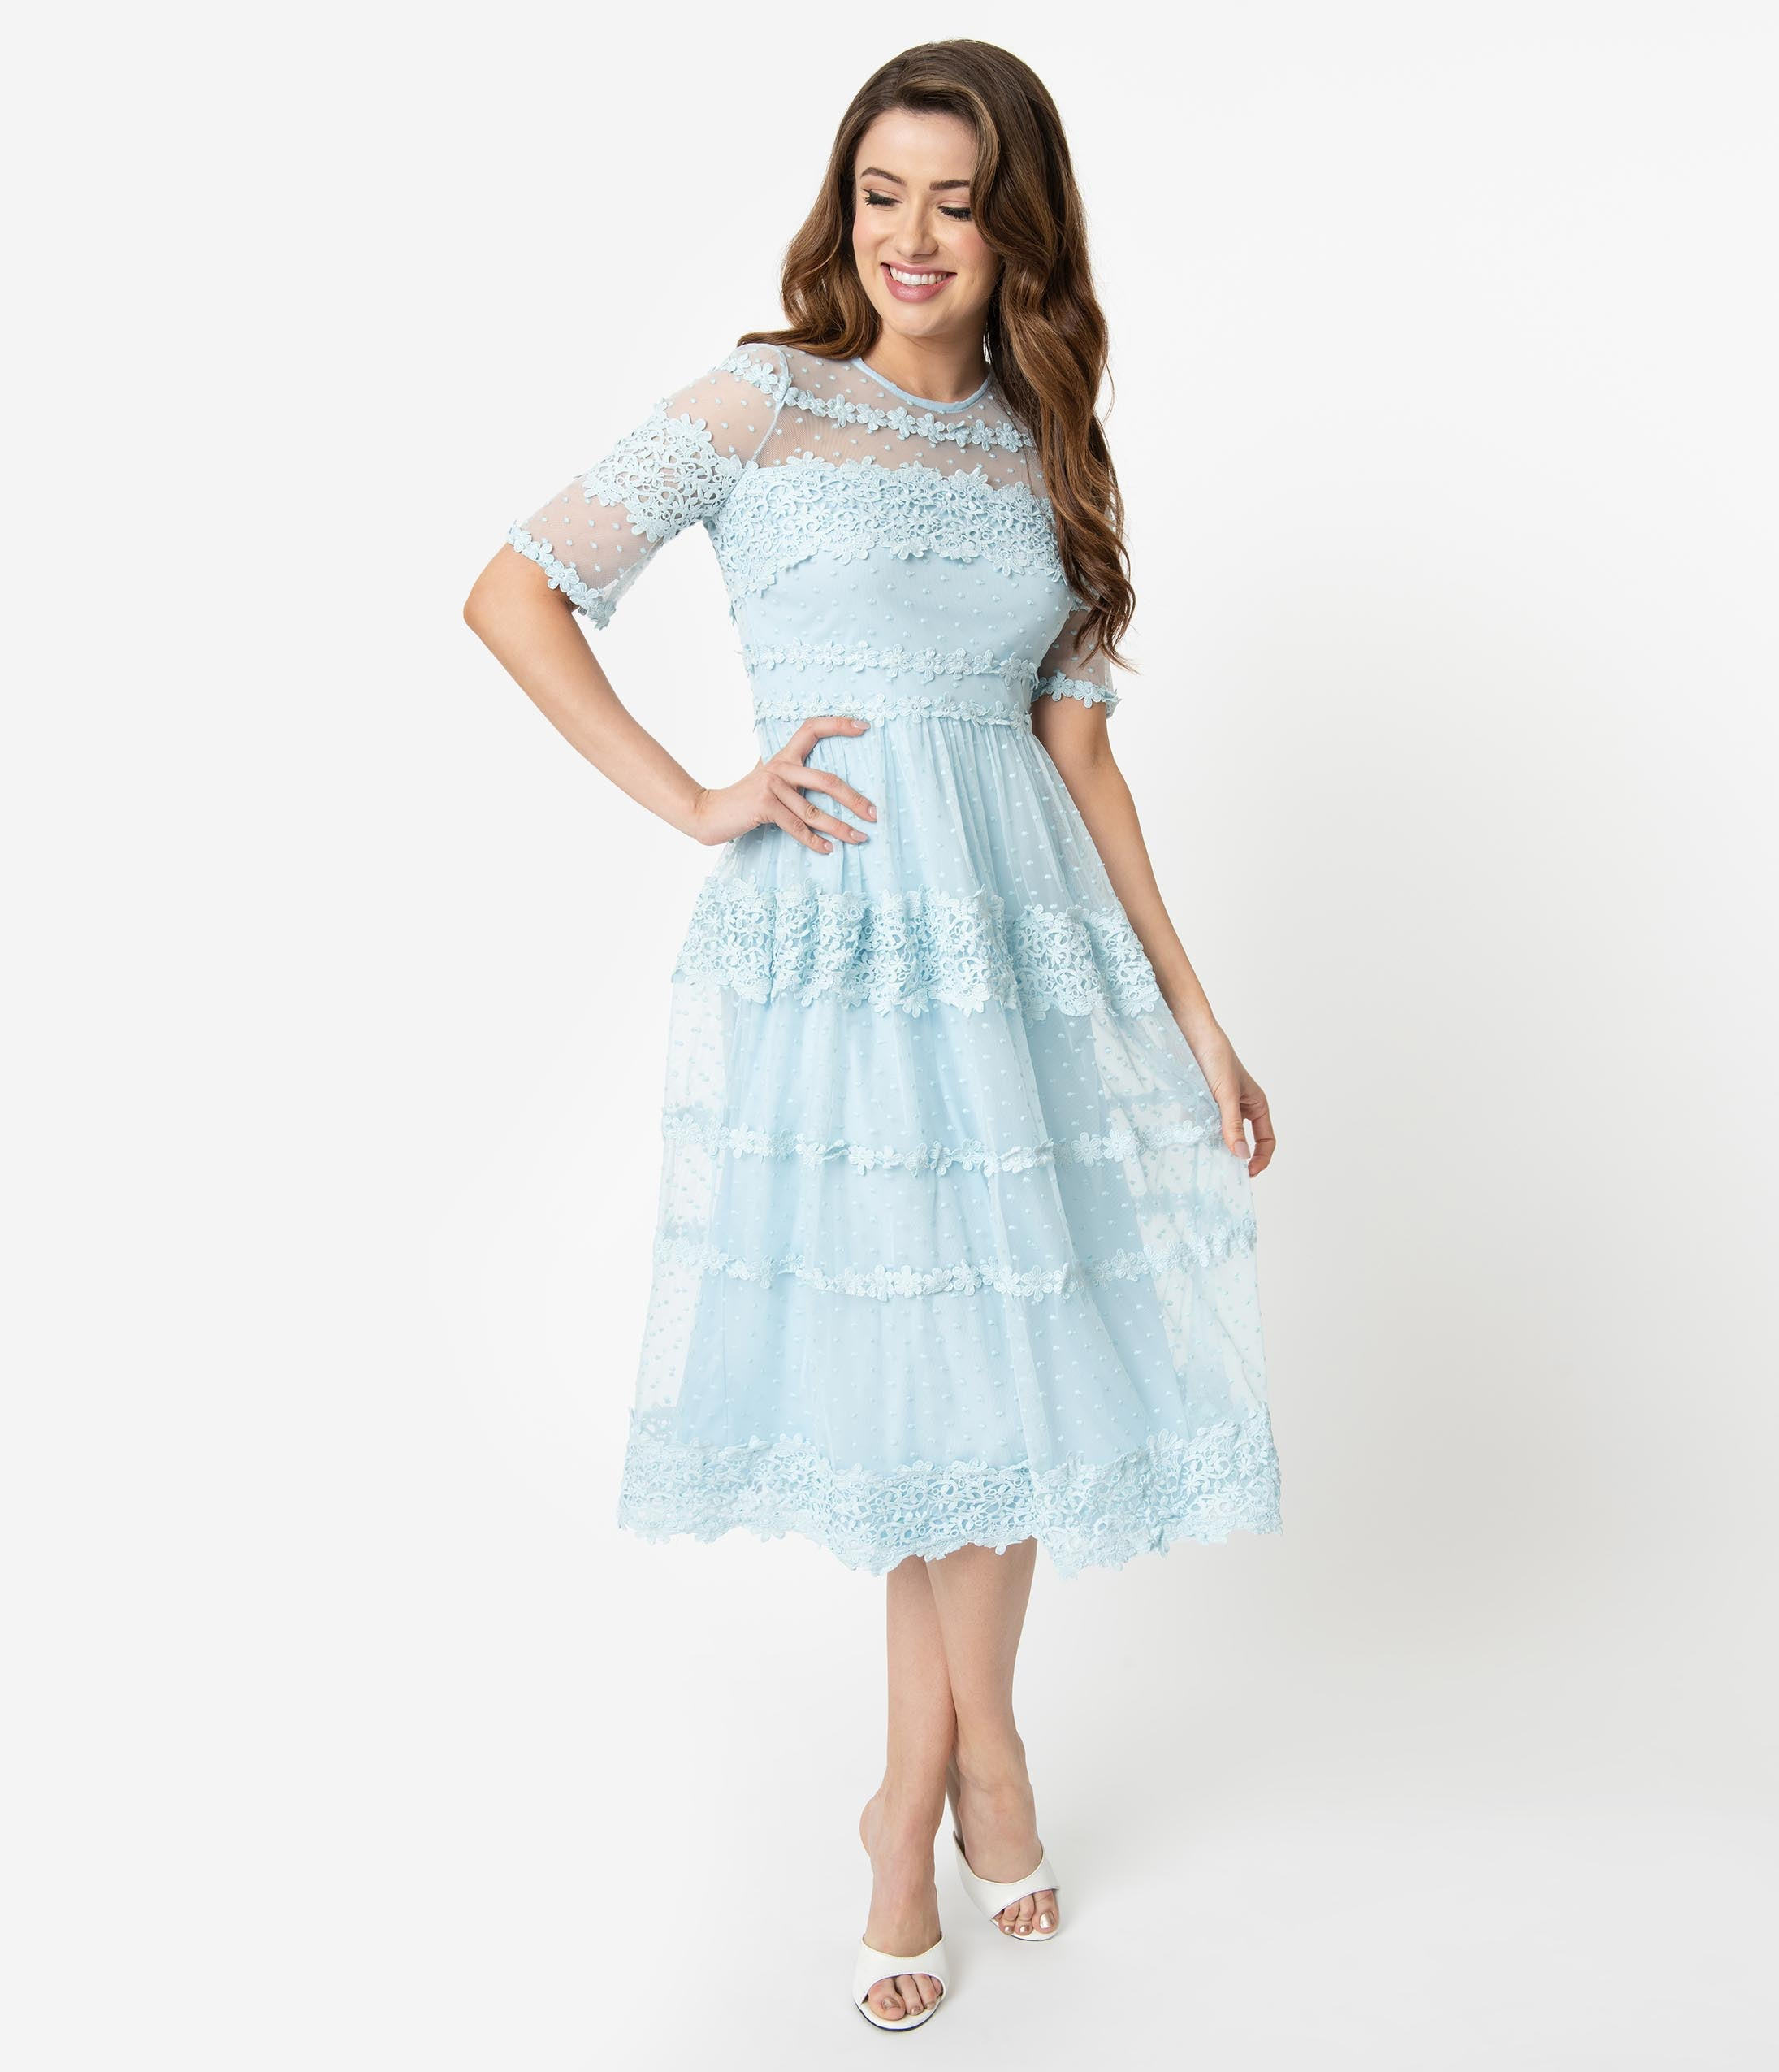 467229db16 Vintage Polka Dotted Dresses: Swing, Flair, A-Line, Pencil – Unique ...